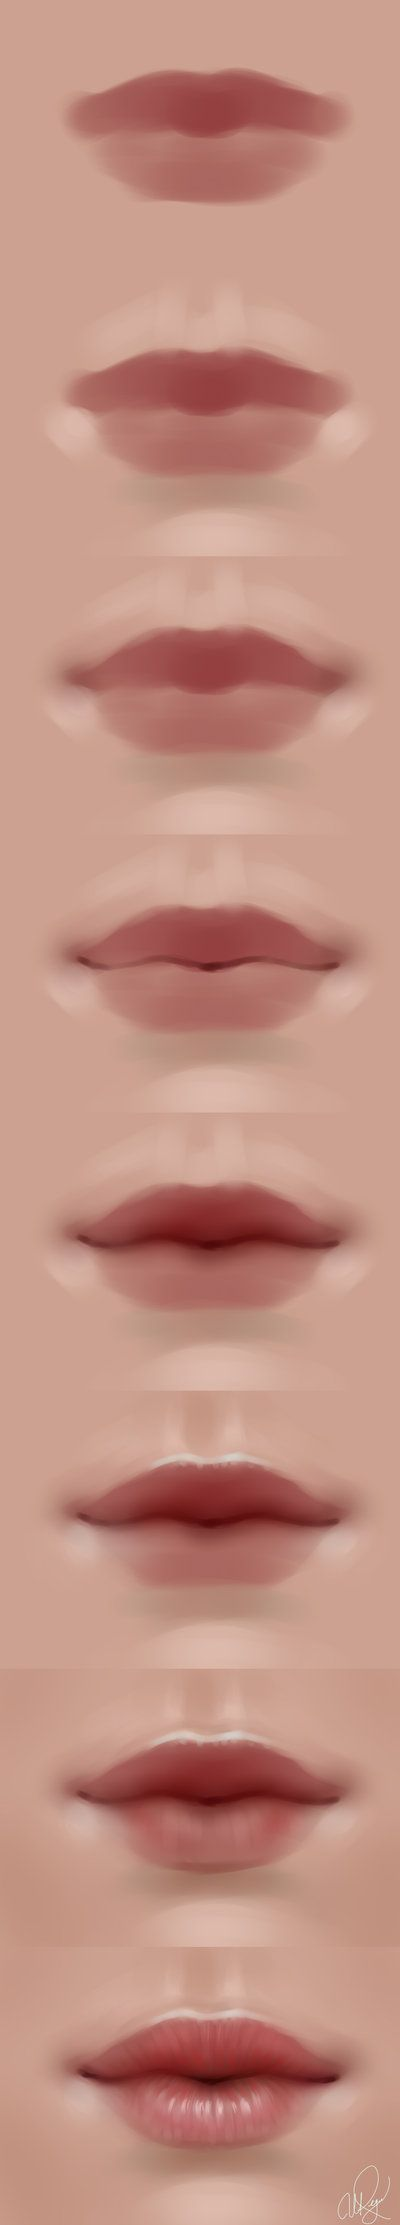 lips walkthrough [dA]